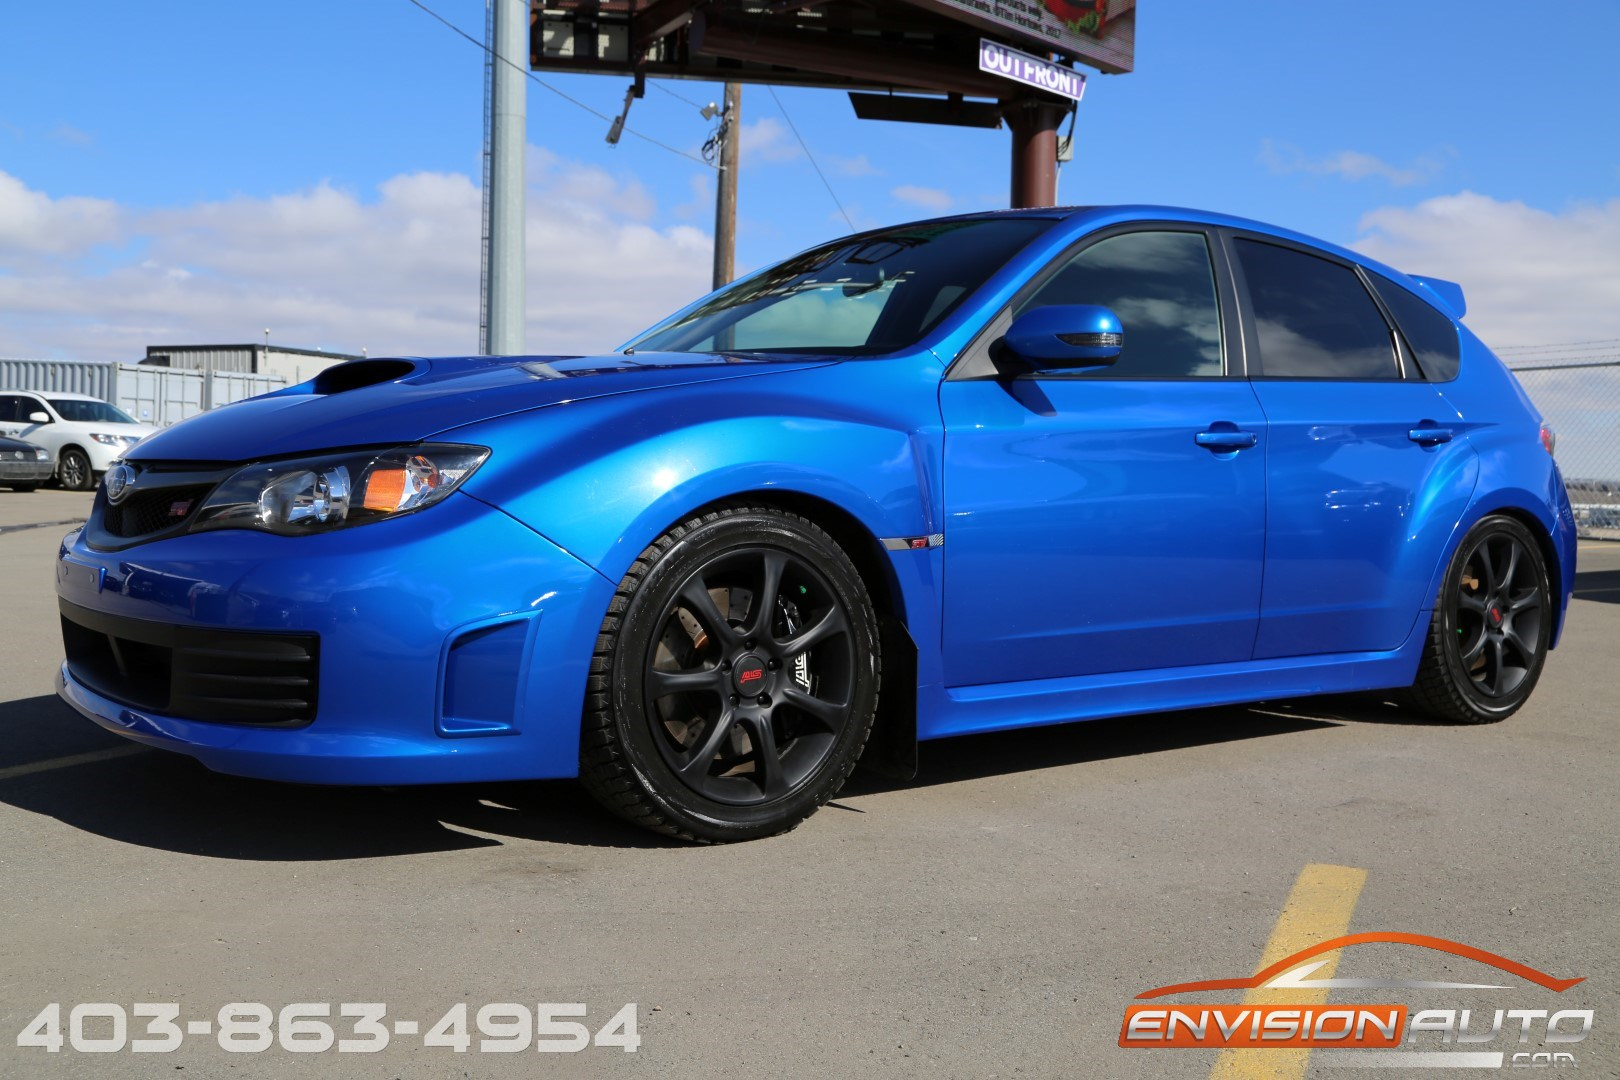 2010 subaru impreza wrx sti � custom built engine � only